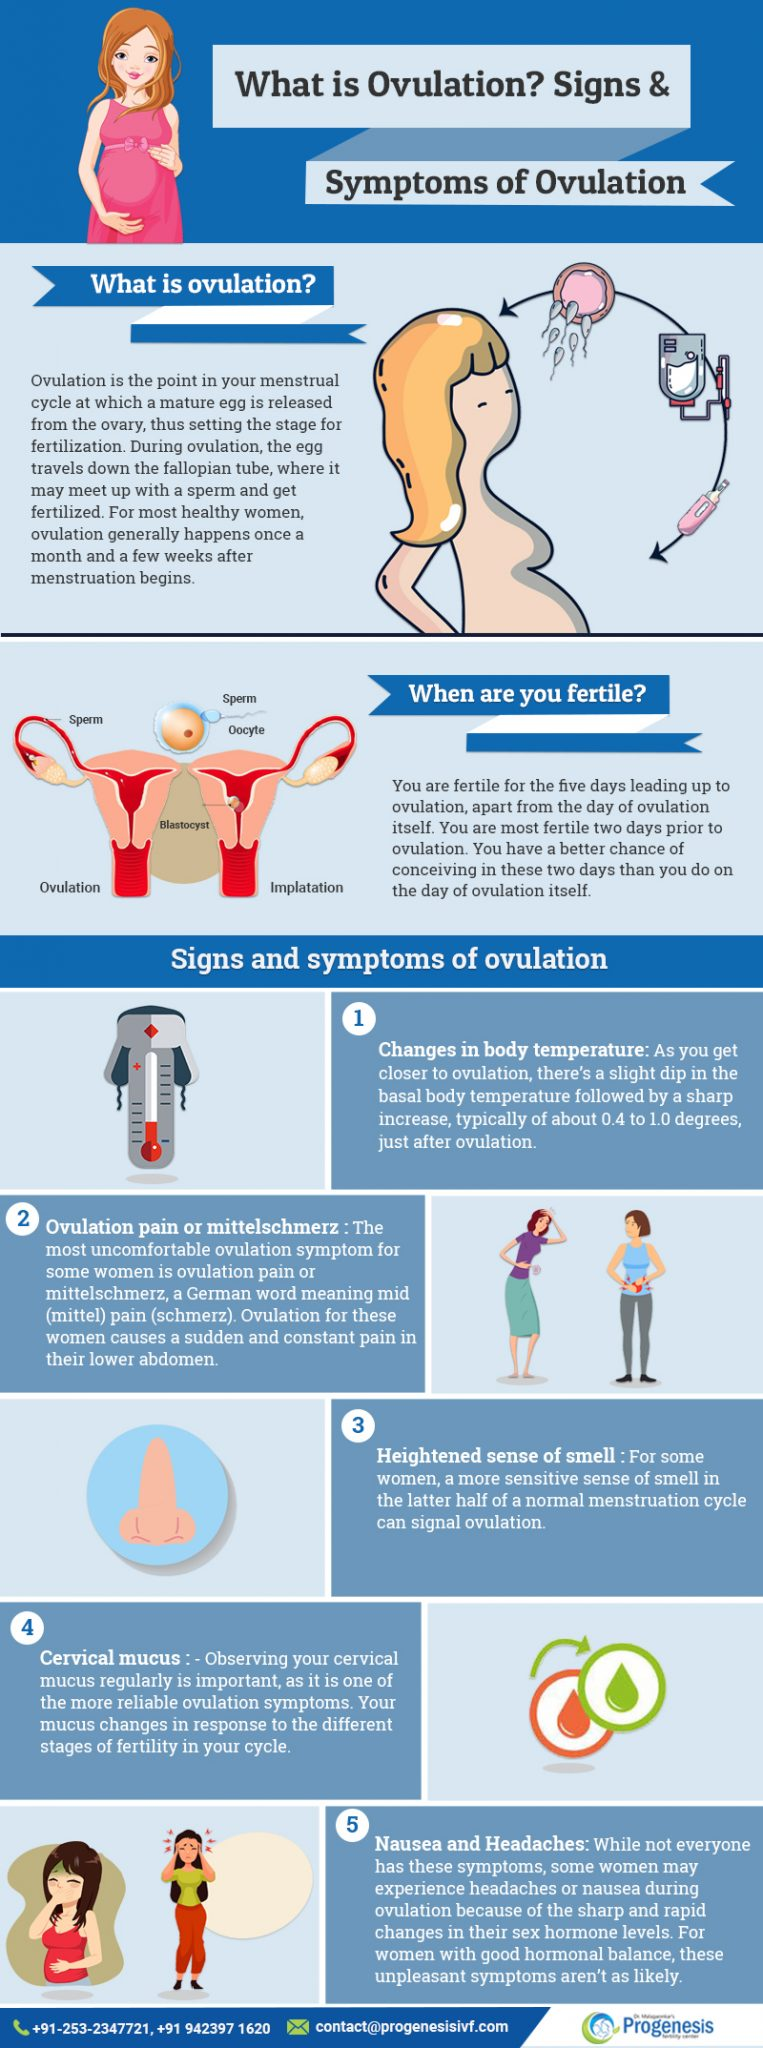 What is ovulation? Signs and Symptoms of Ovulation